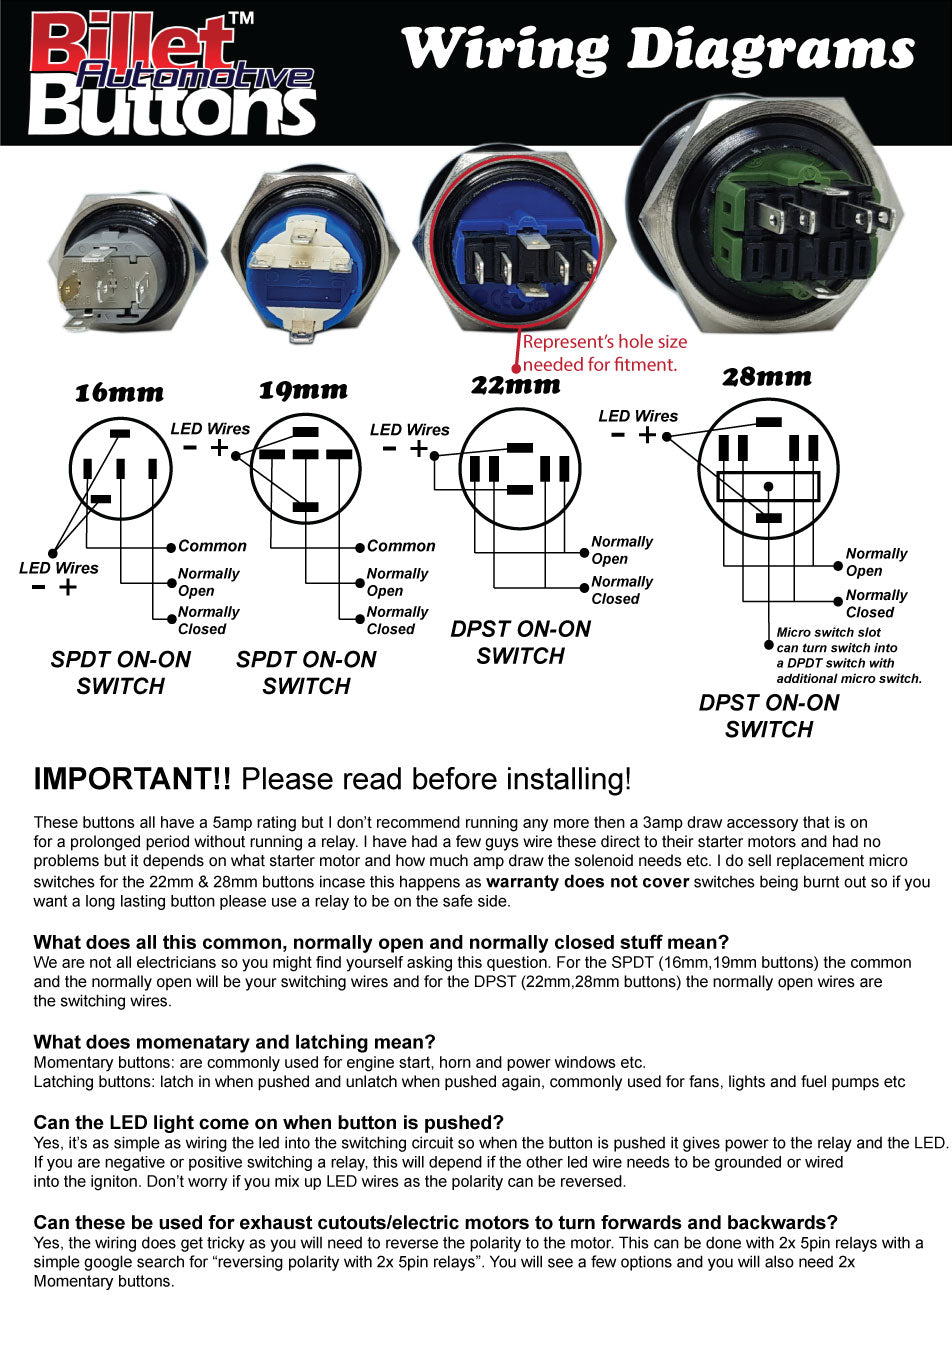 Billet button wiring diagrams